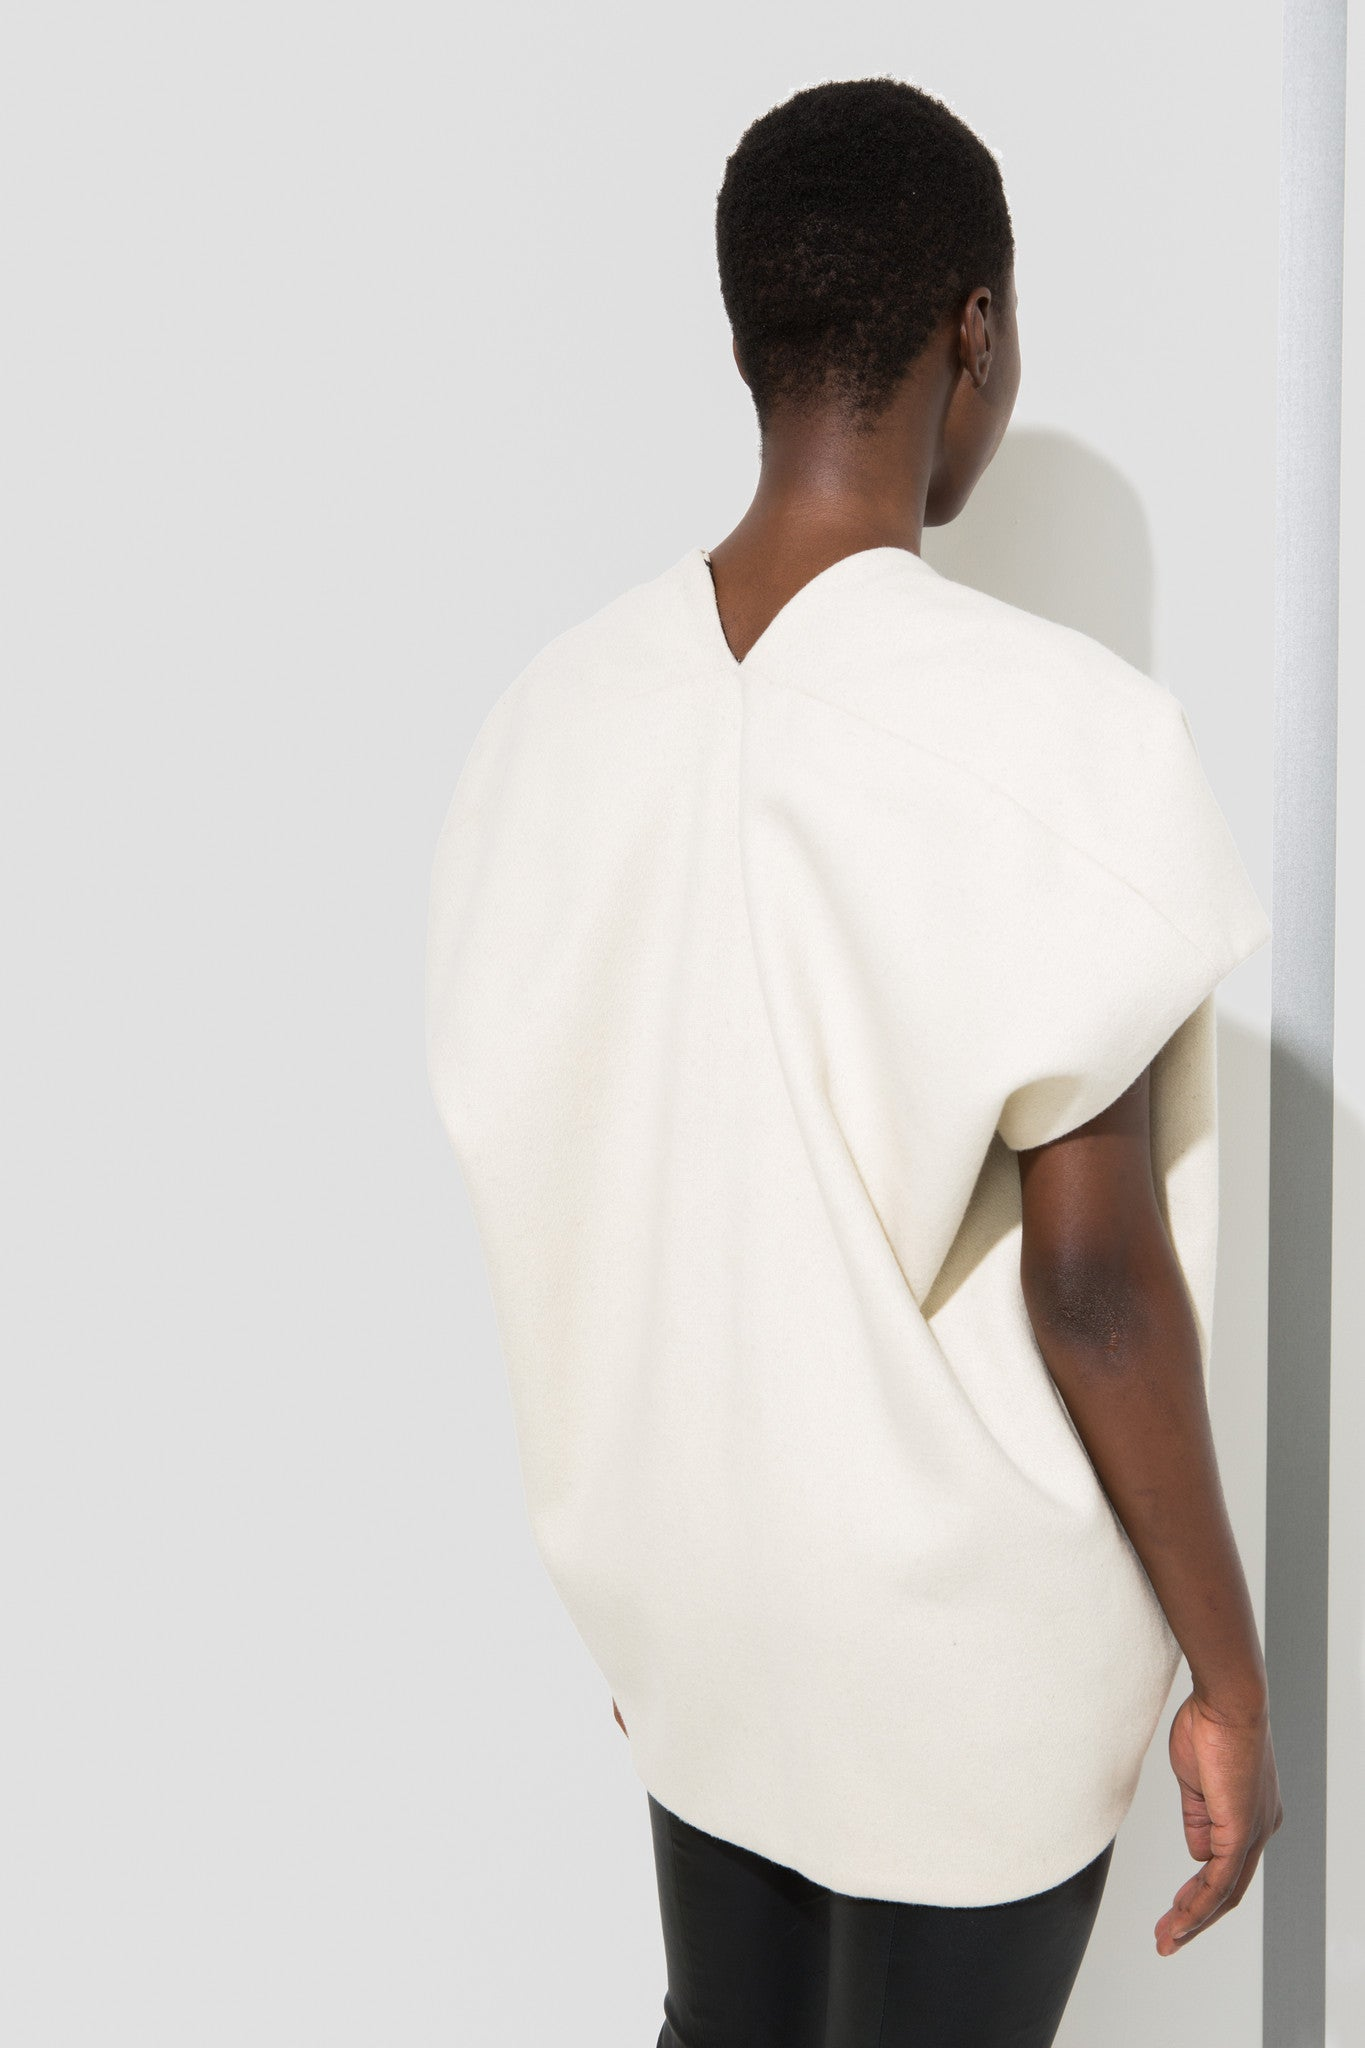 Round Vest is a cocoon shaped vest designed by H. Fredriksson.